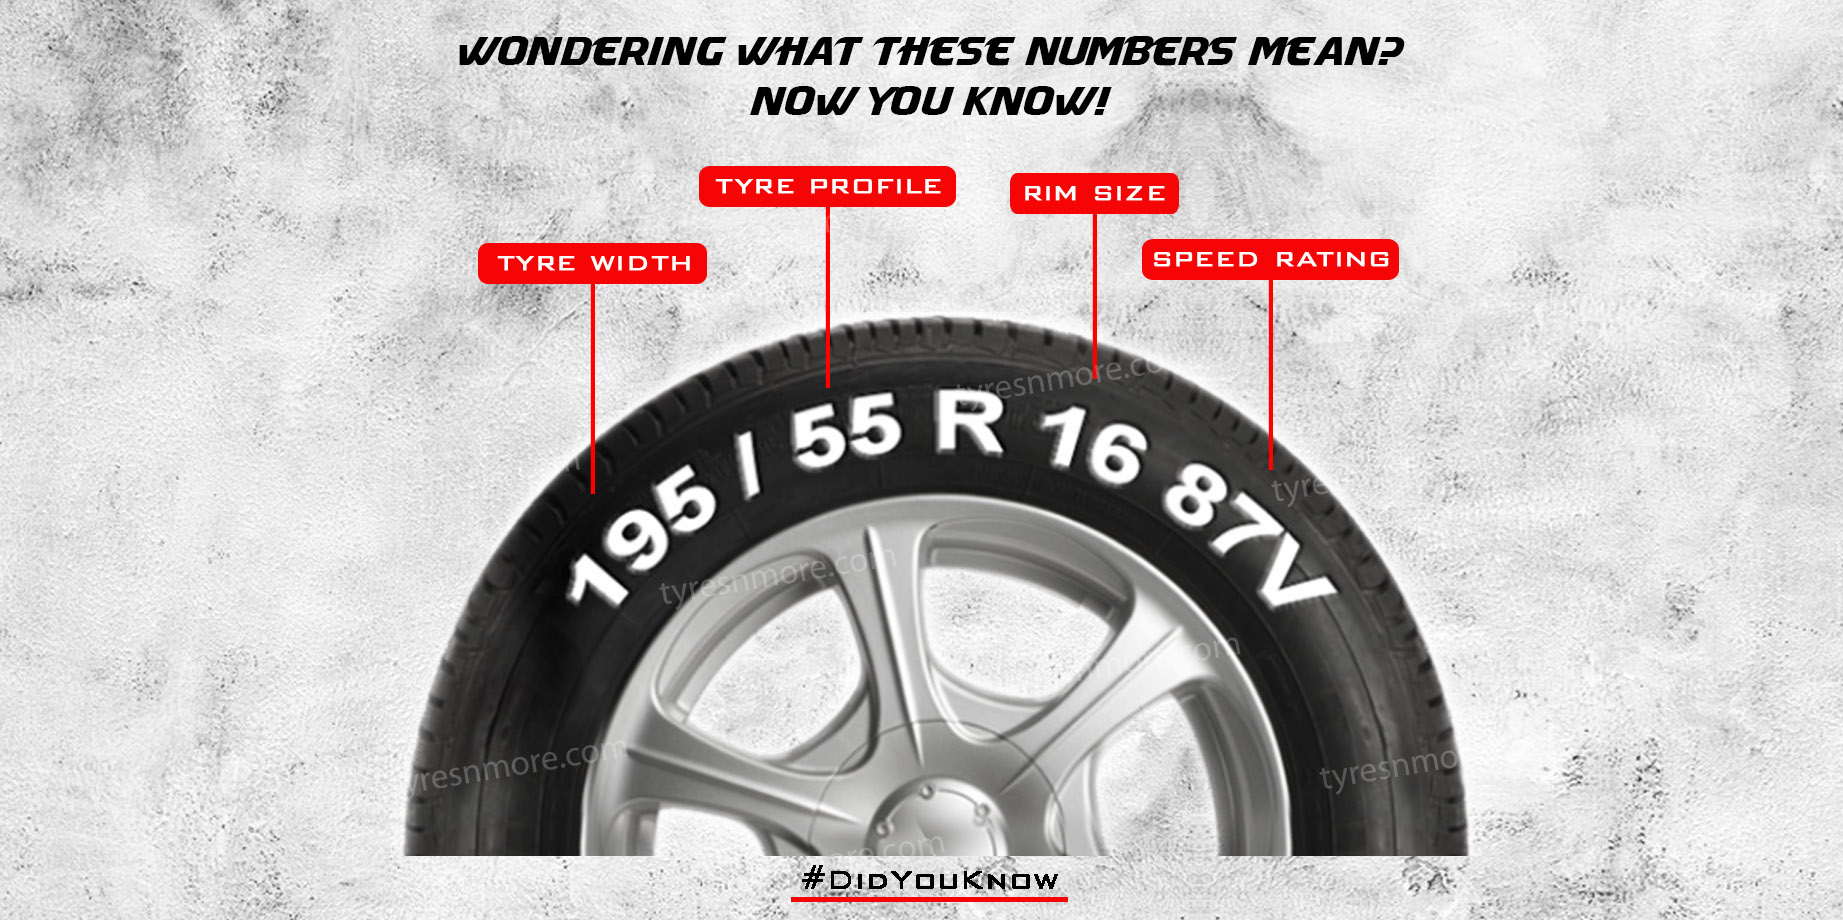 Learn how to read the tyre size for your car - Tyresnmore.com